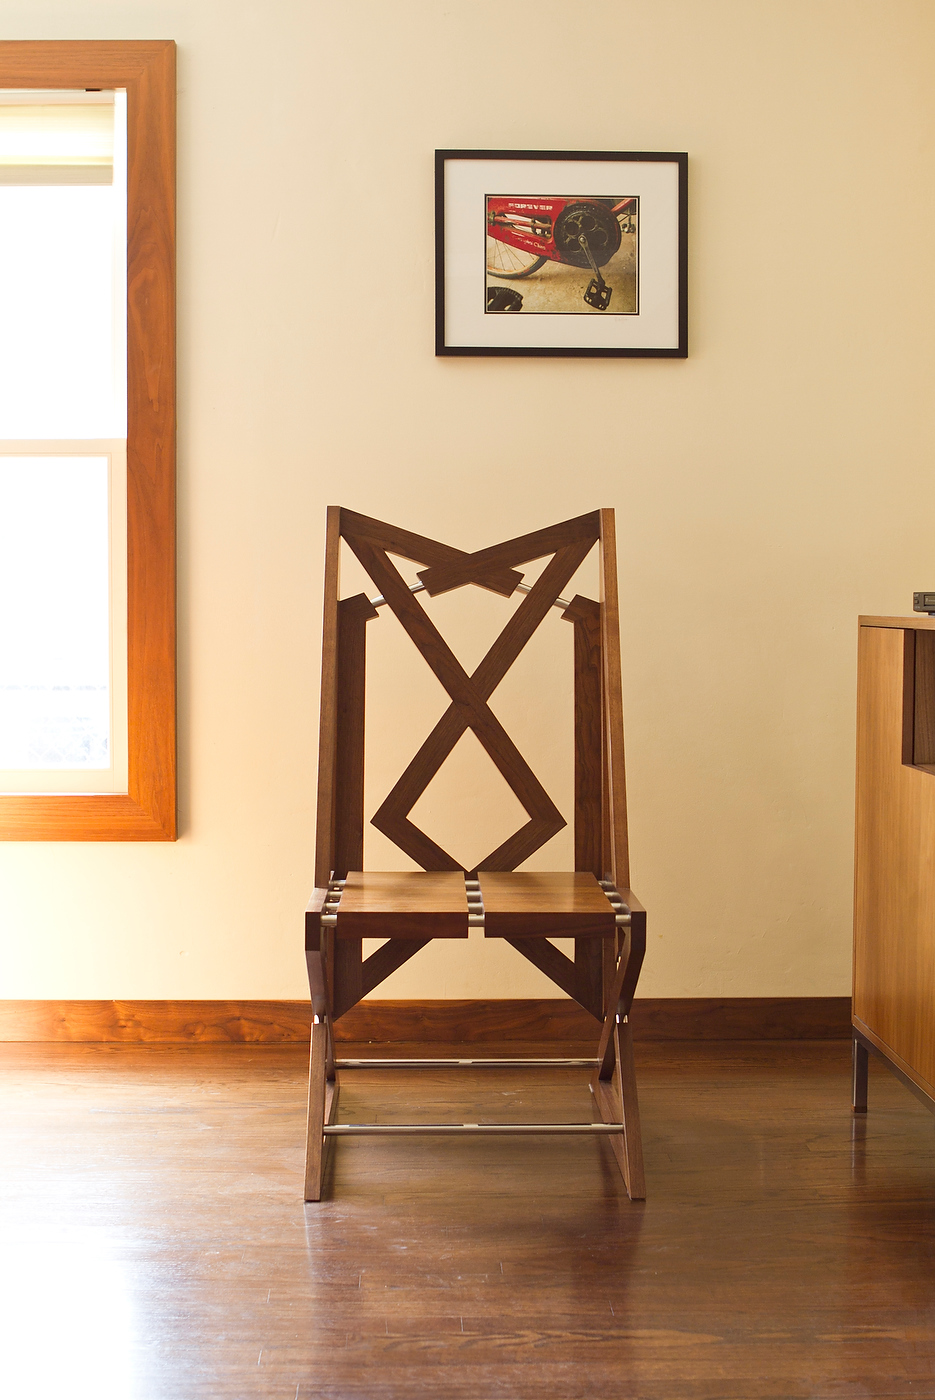 furniture-chair-thing-03.jpg